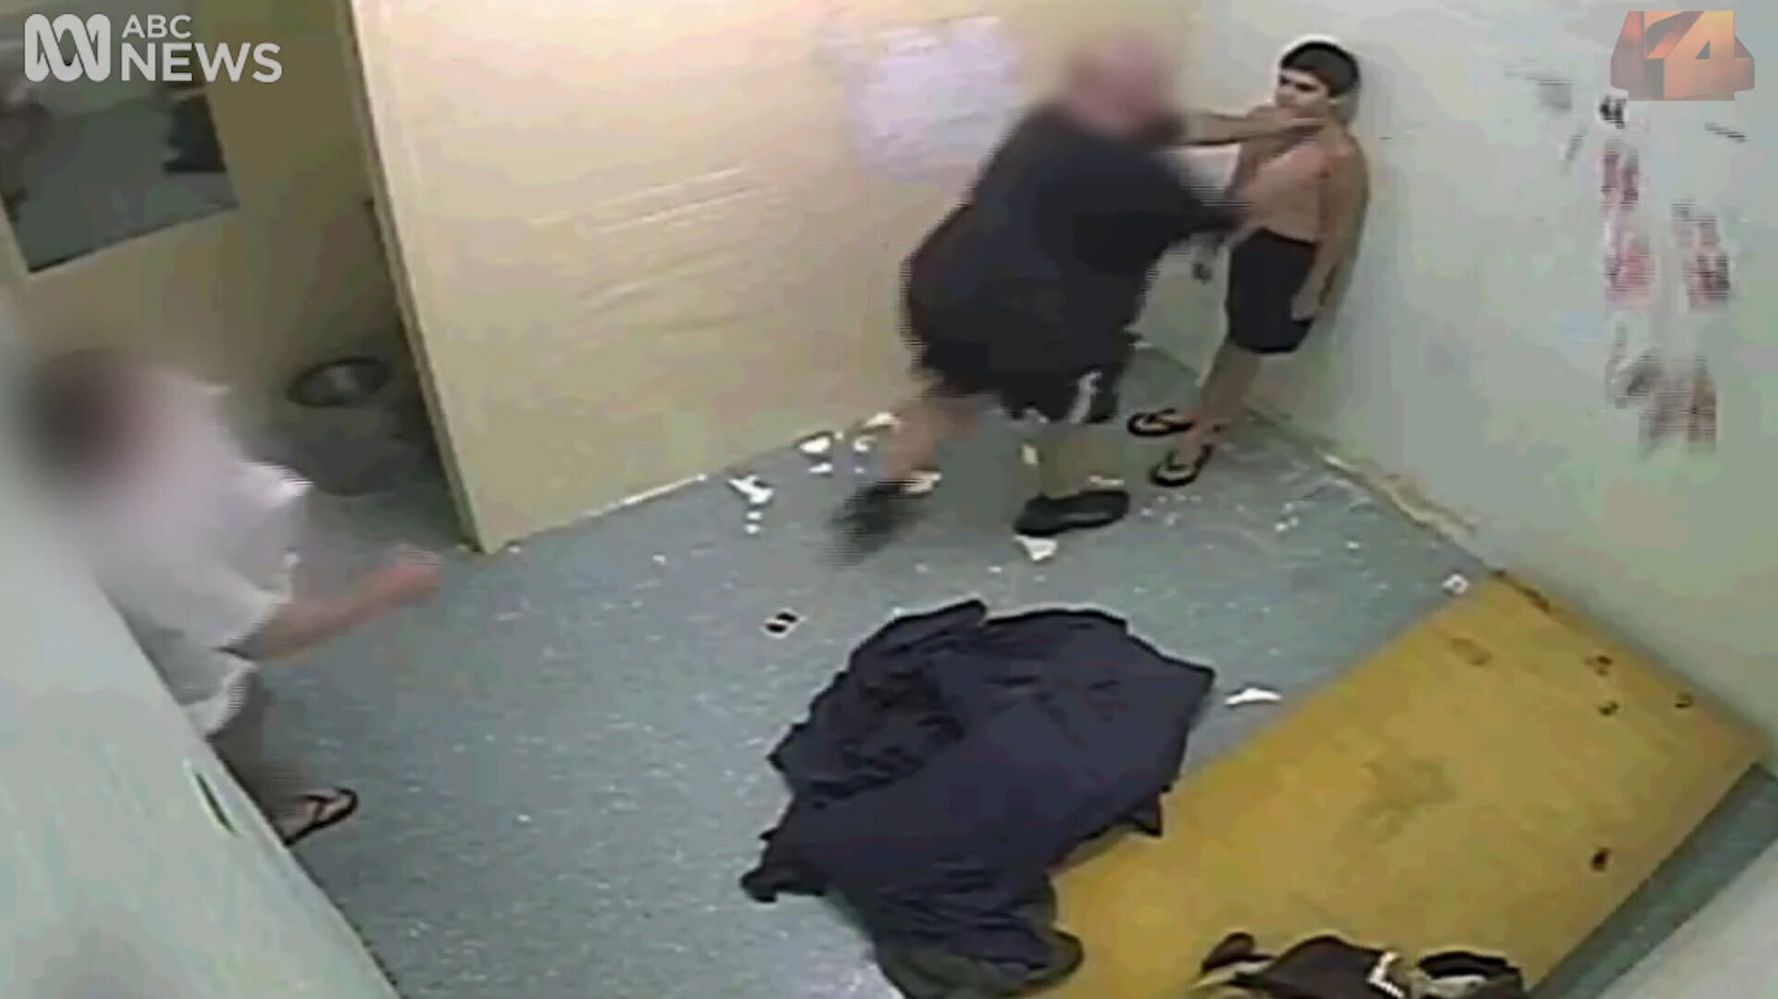 Boy, 17, strapped to mechanical chair as ABC Four Corners